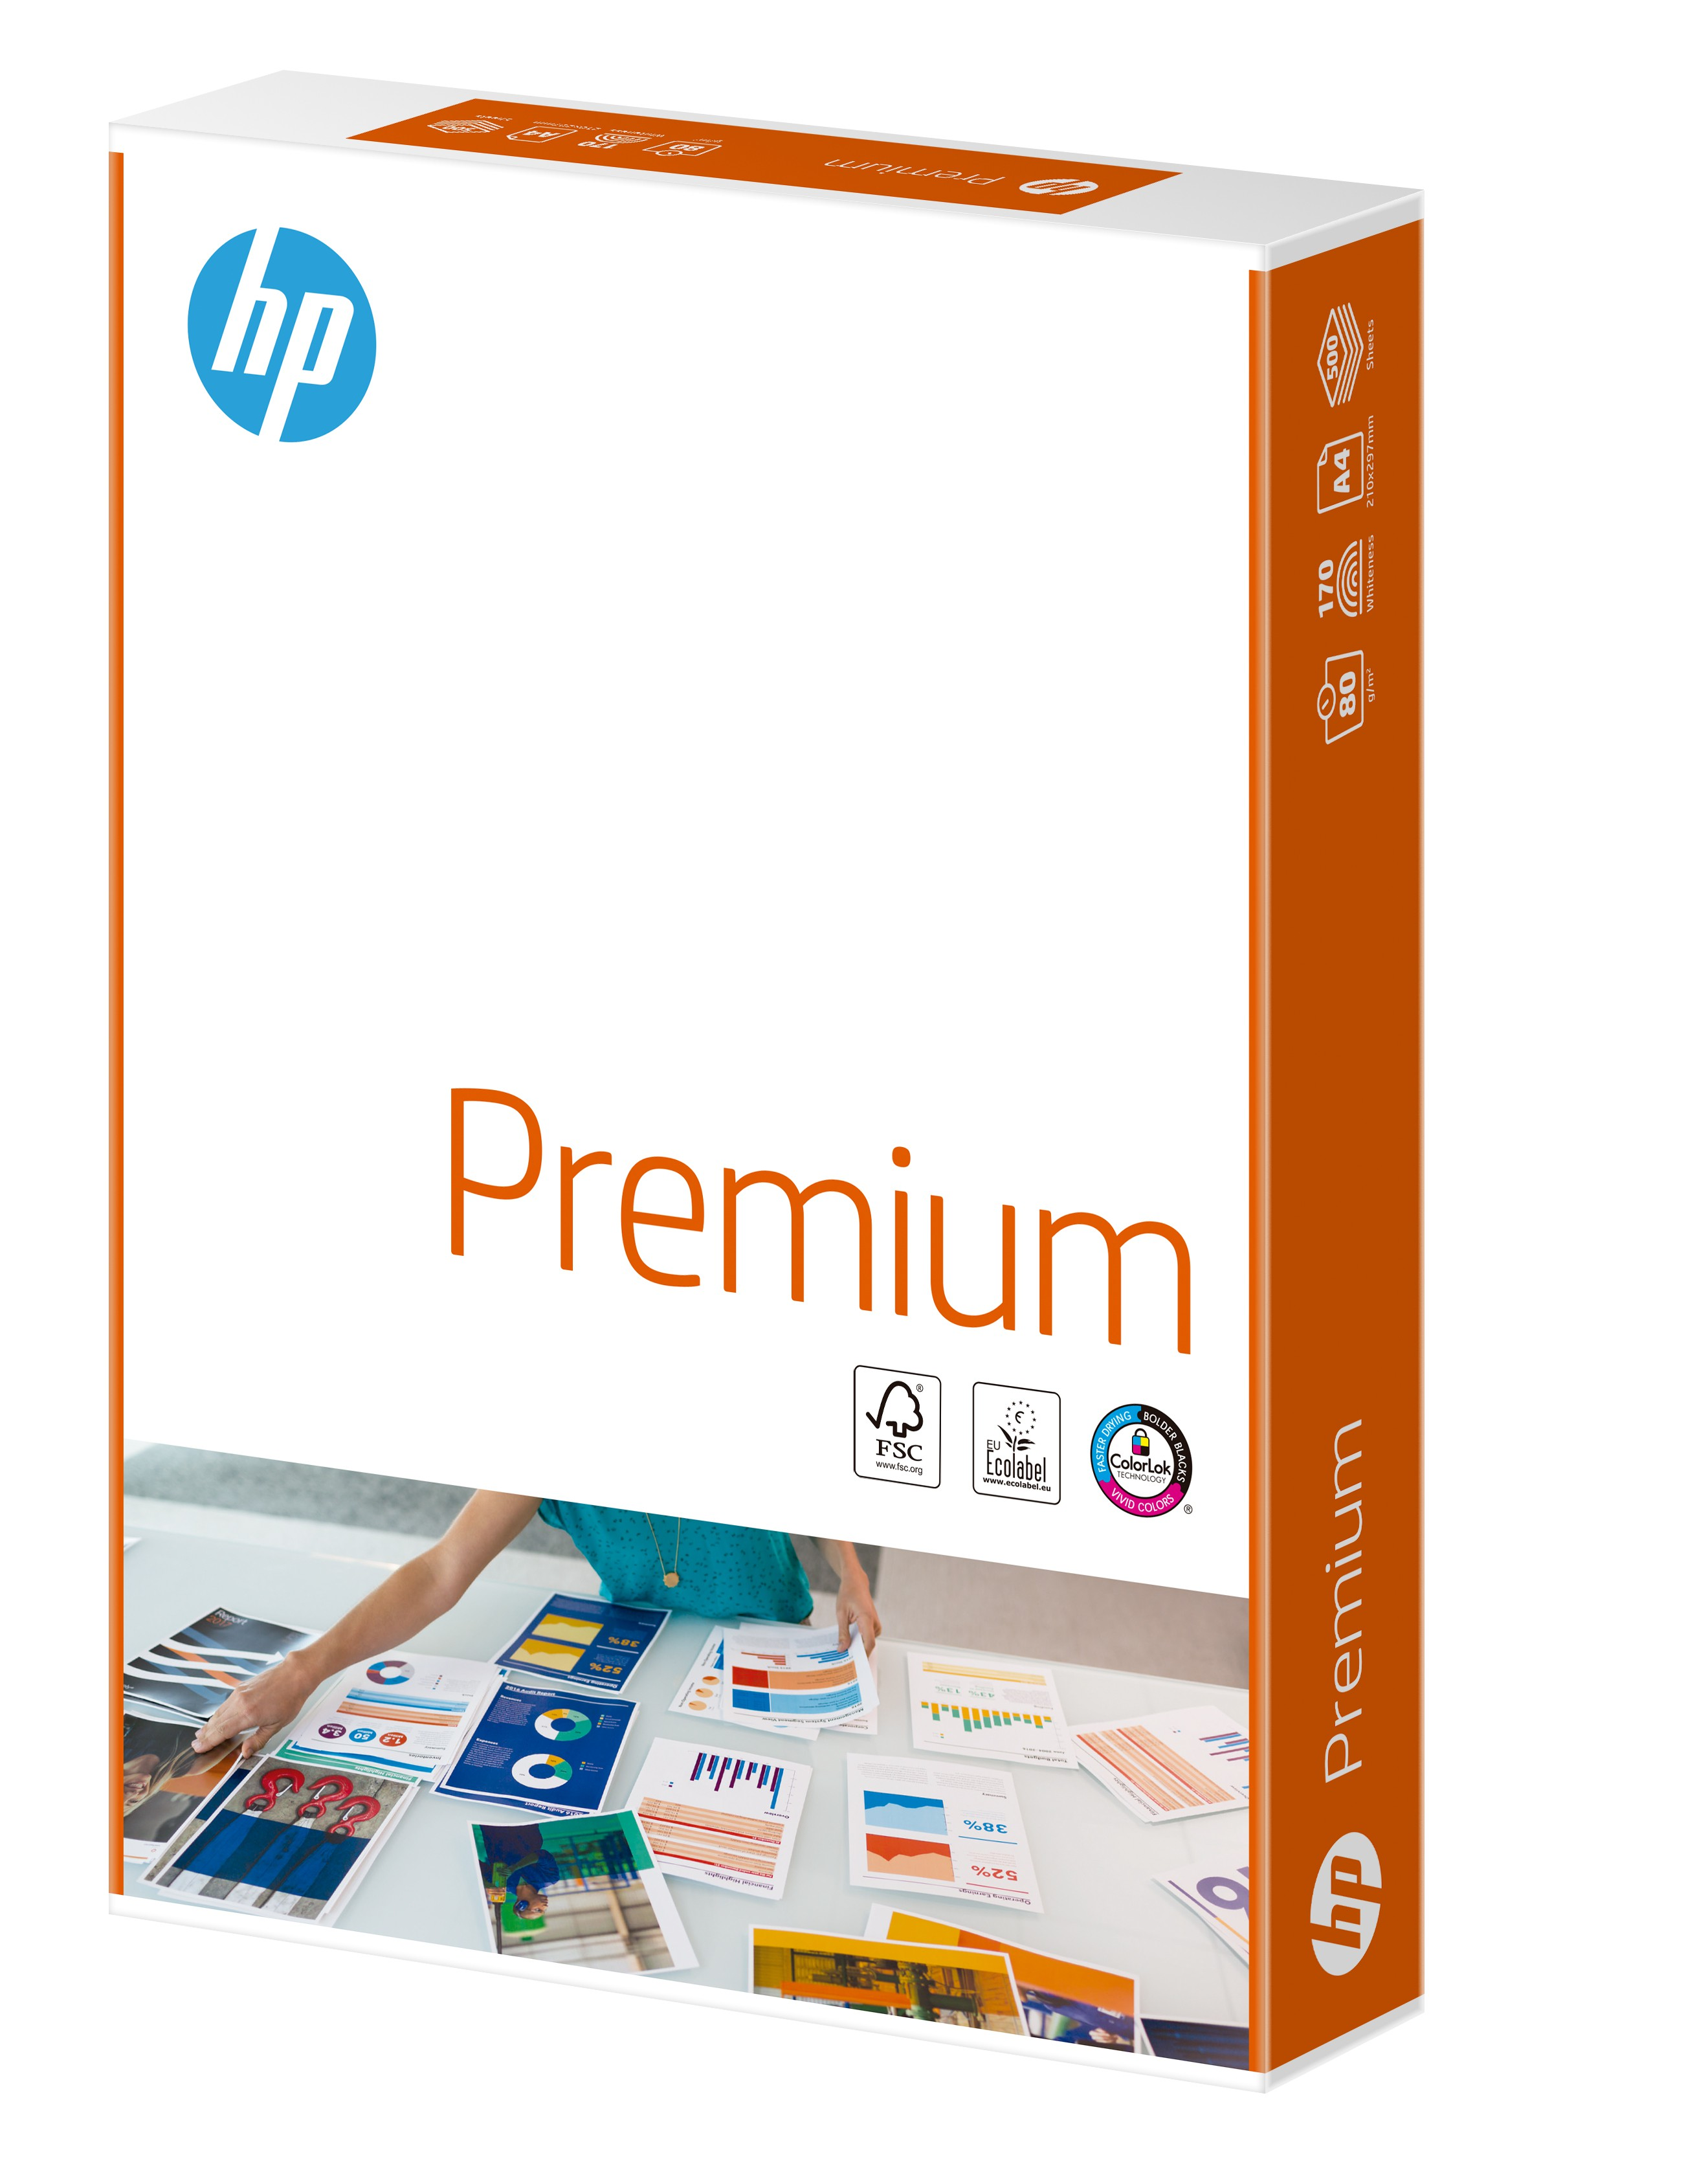 HP Premium Paper Multifunction 80gsm A4 White FSC Colorlok (Box of 2,500 Sheets) CHP850